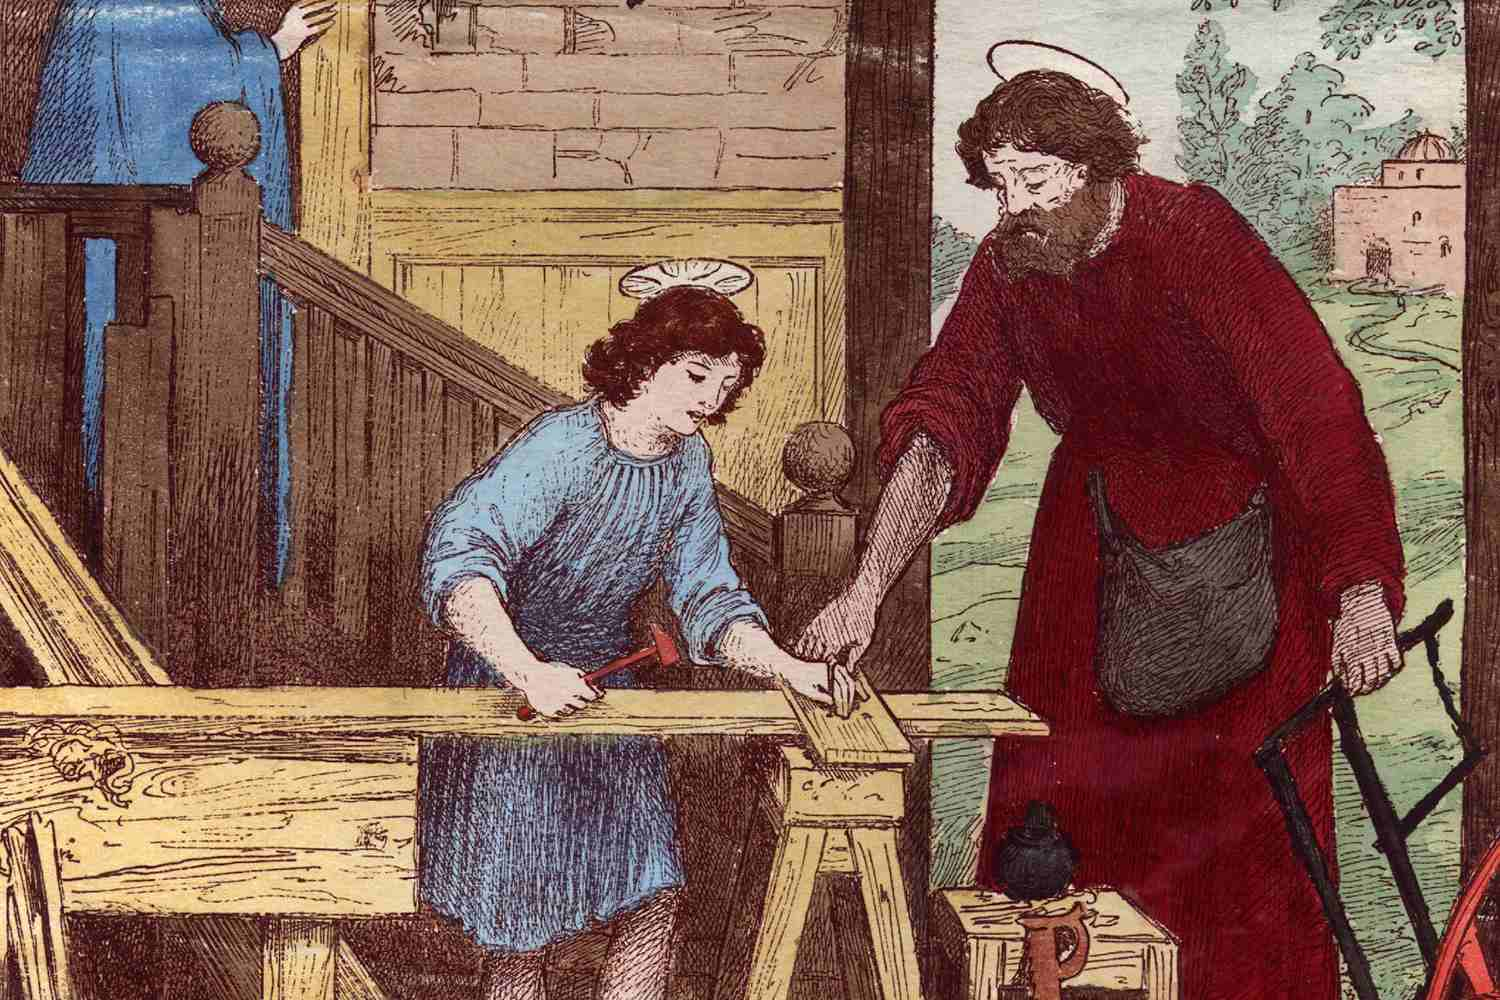 Jesus working as a boy in his Father Joseph's carpentry shop in Nazareth